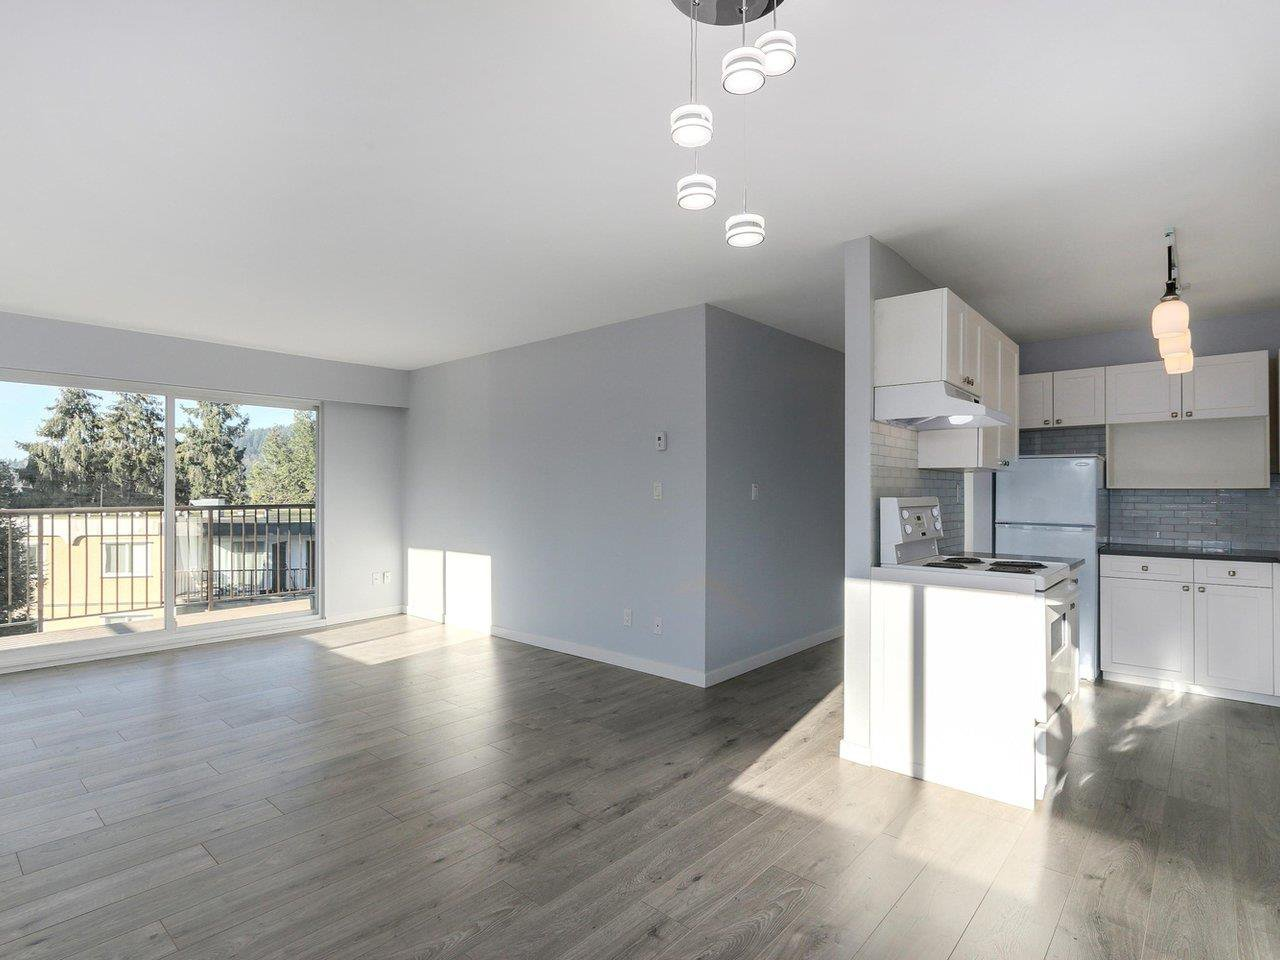 Main Photo: 419 630 CLARKE Road in Coquitlam: Coquitlam West Condo for sale : MLS®# R2326508